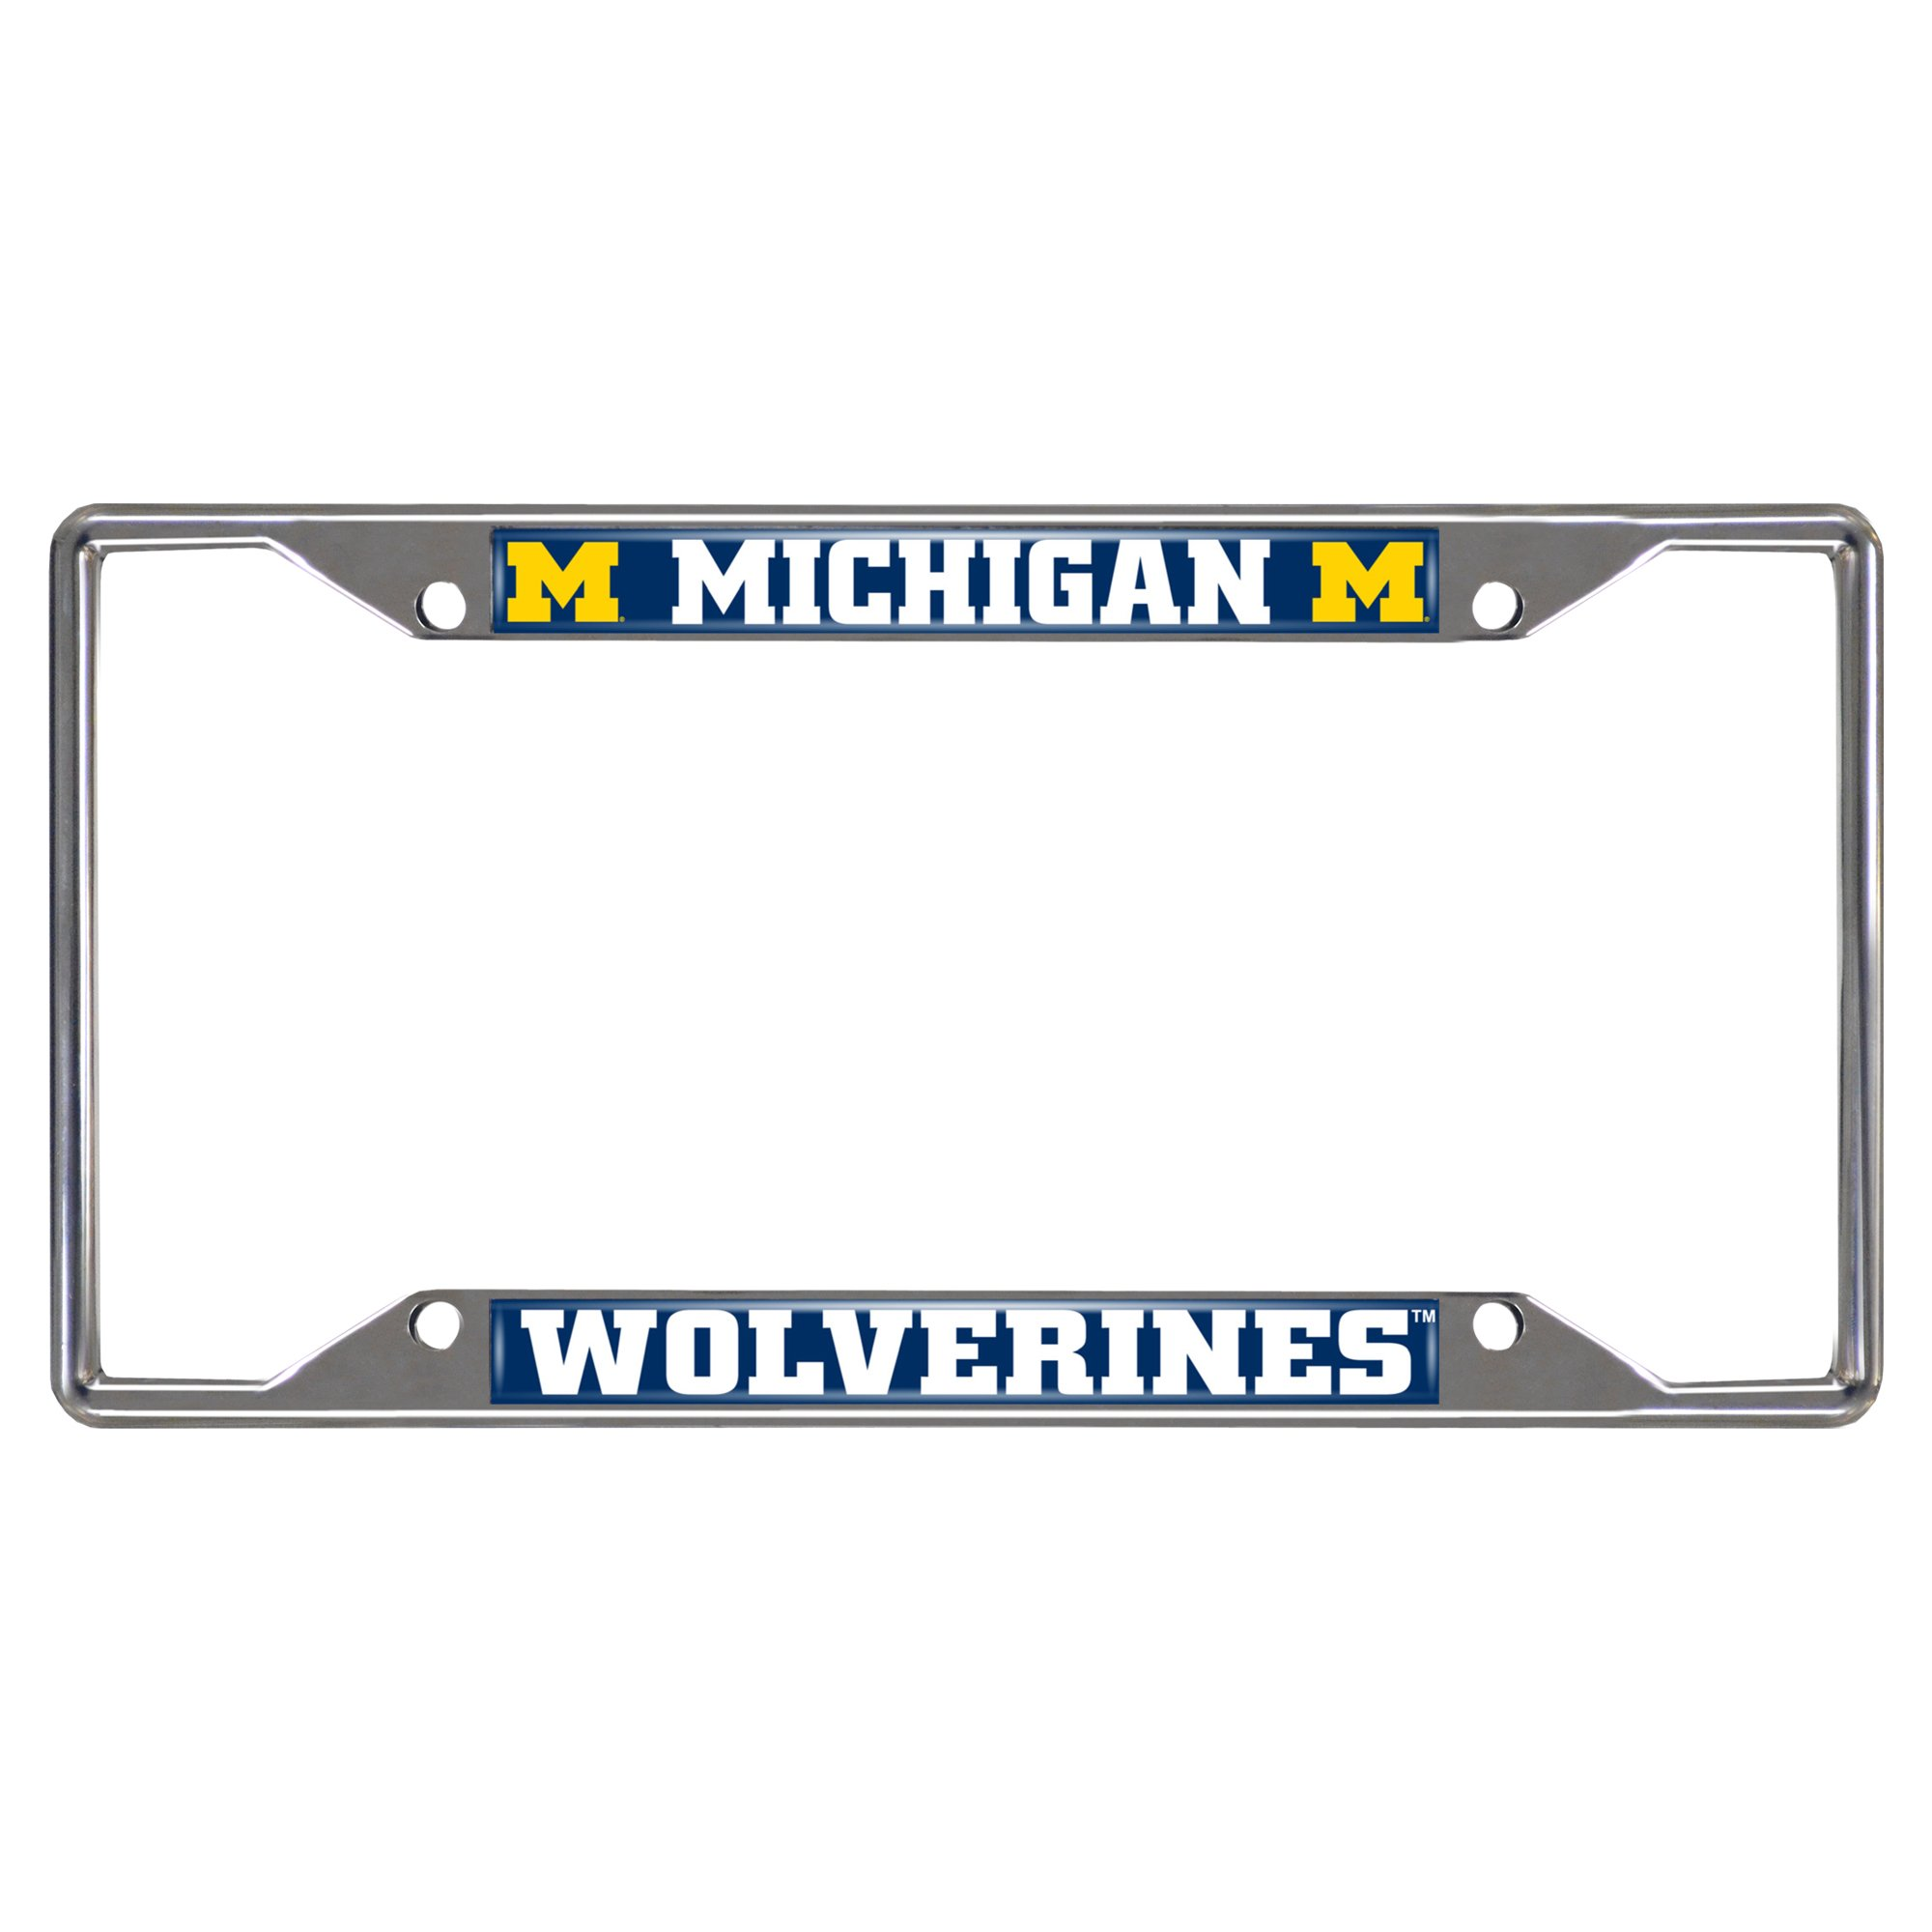 Fanmats 14823 NCAA University of Michigan Wolverines Chrome License Plate Frame, 6.25''x12.25''